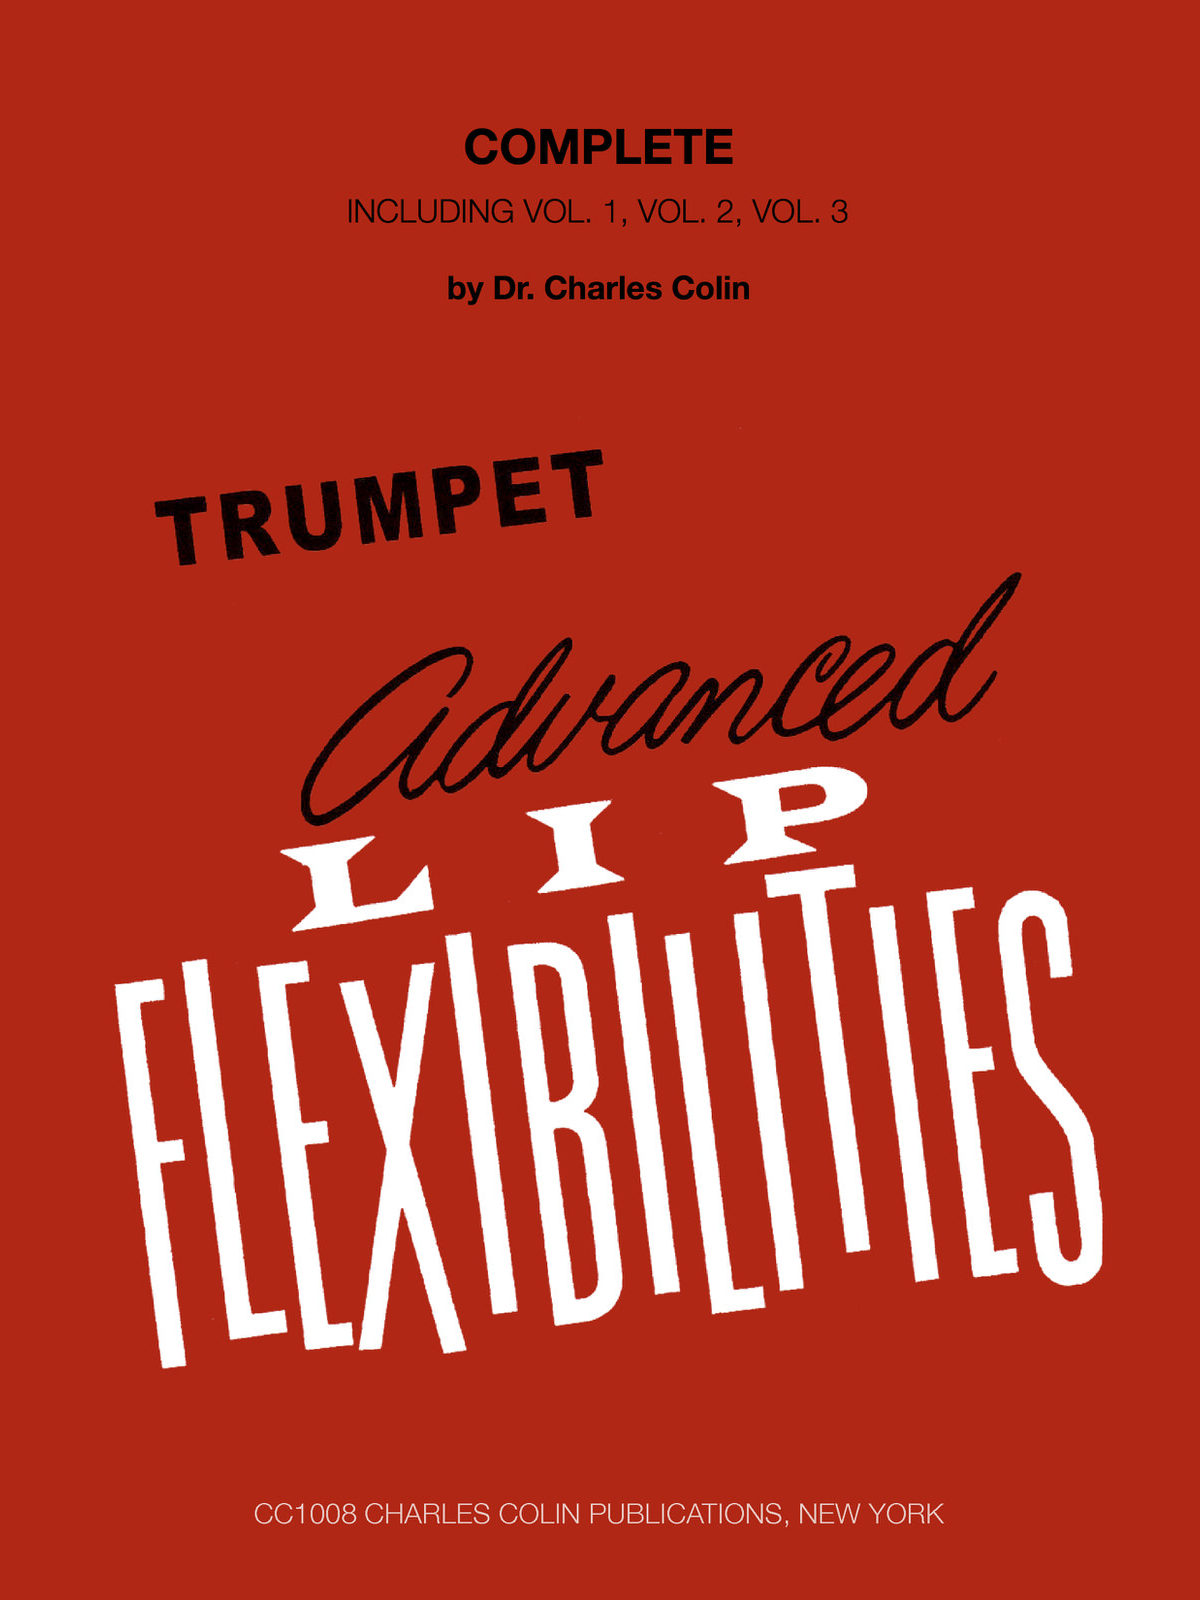 Trumpet Advanced Lip Flexibilities - Complete